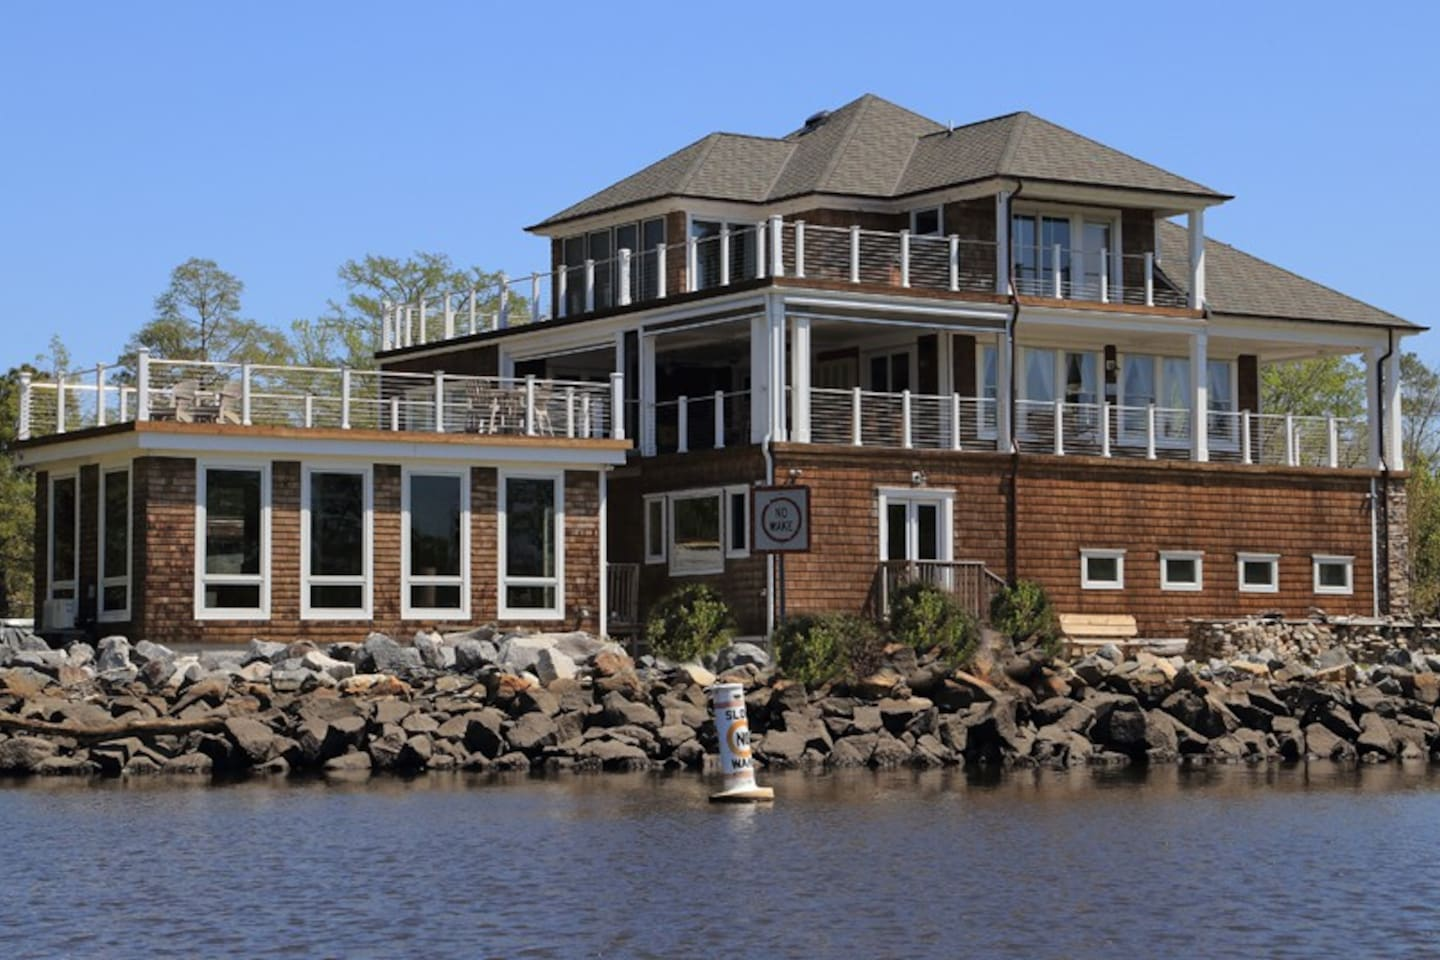 Ross's Retreat is located on the Northwest River branch of the ICW bordering the Chesapeake / VA Beach City lines